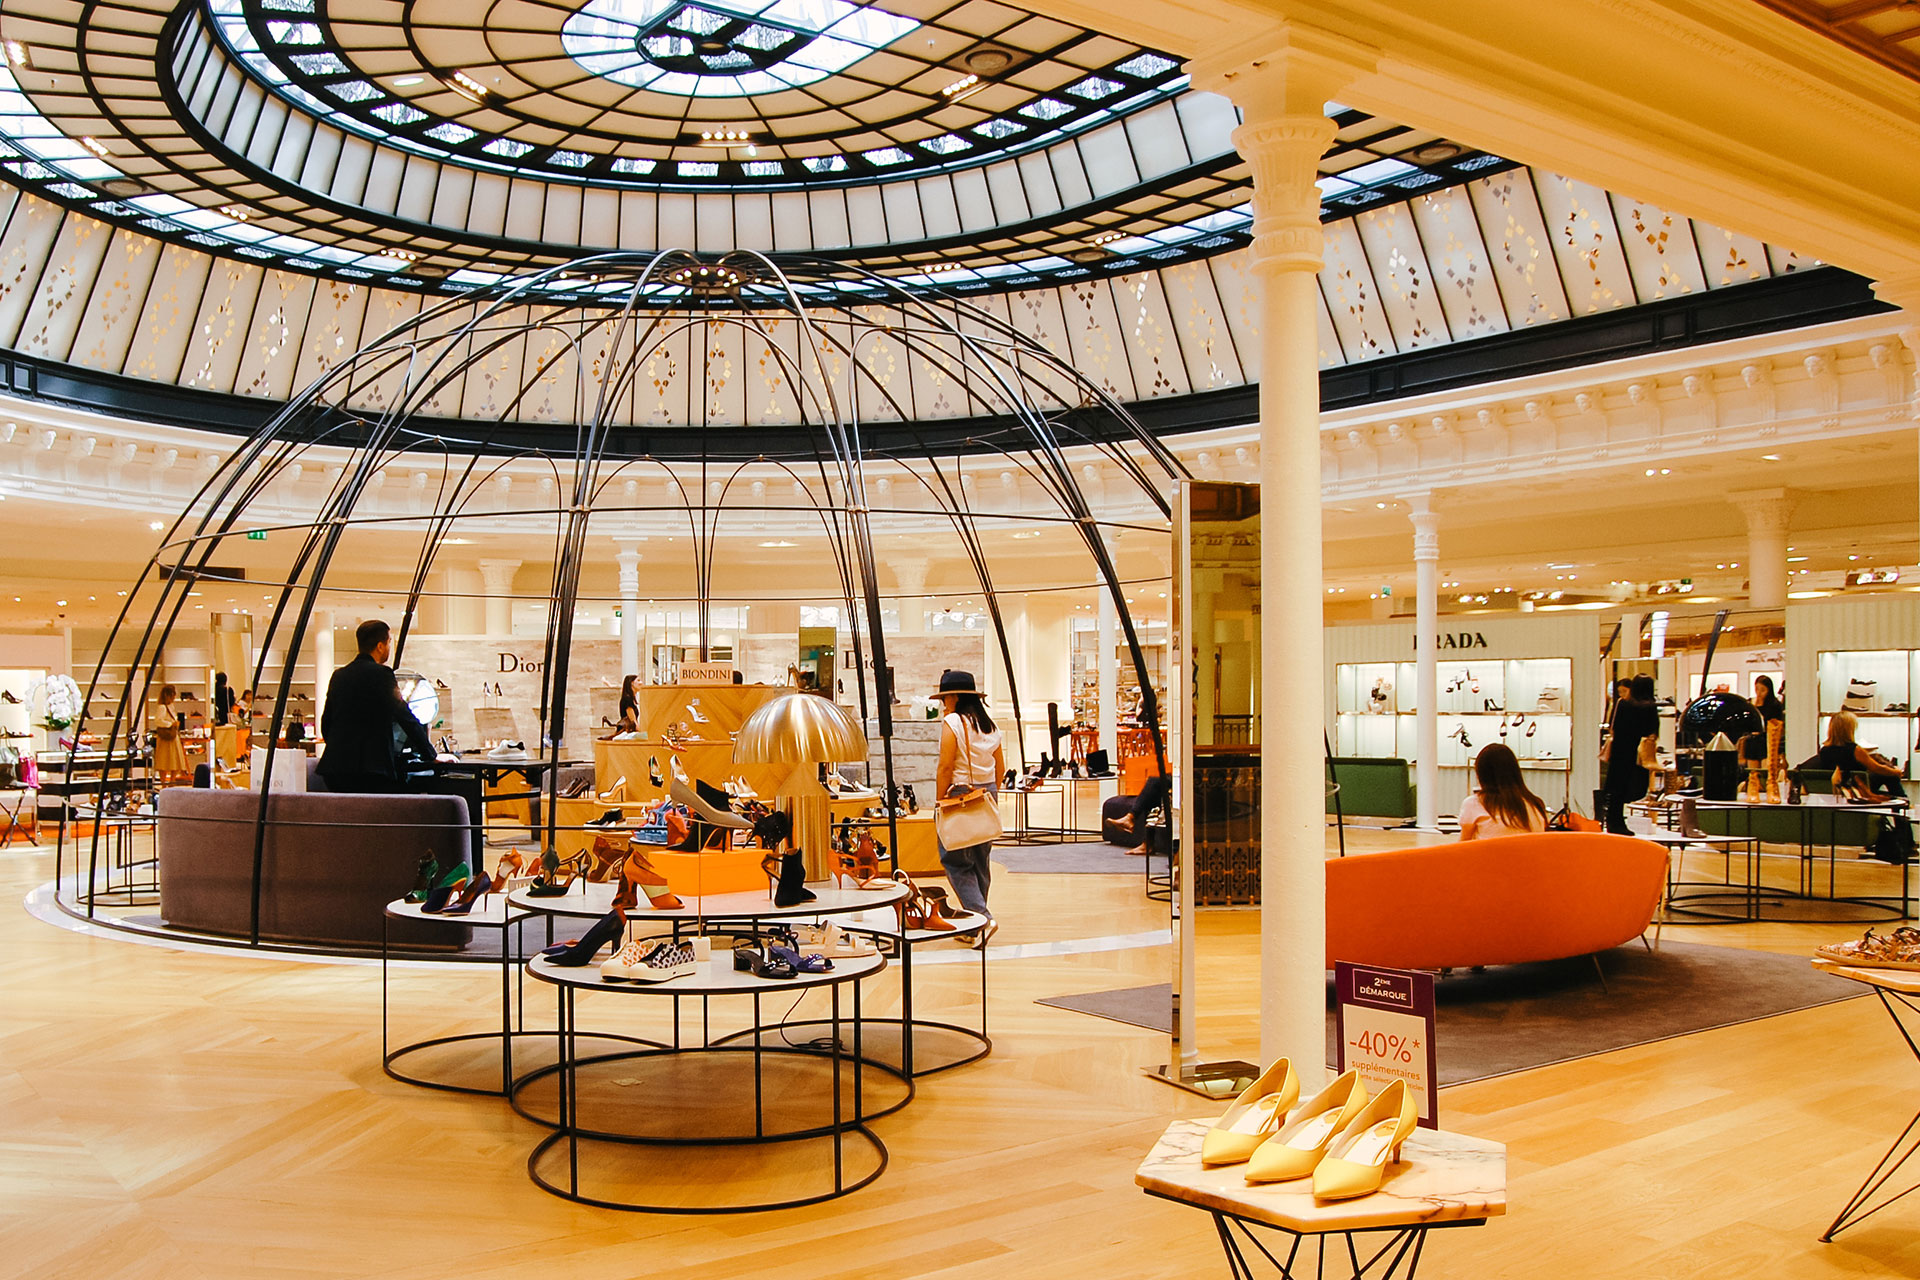 Shop with style in the stunning Le Bon Marché